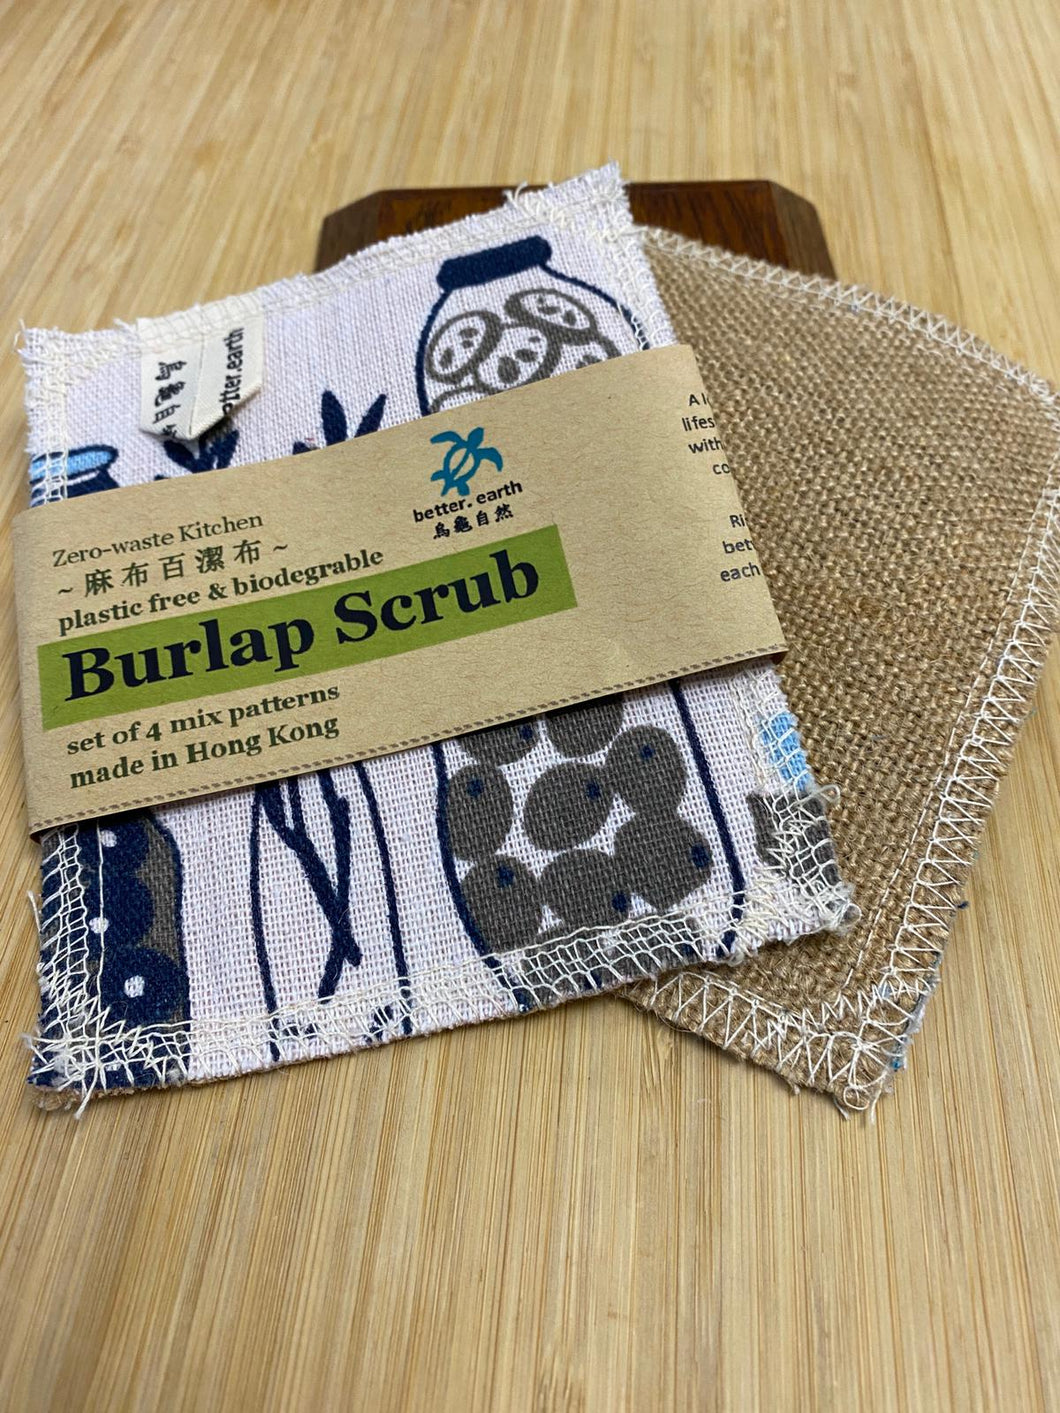 Burlap Scrub(single) Better Earth